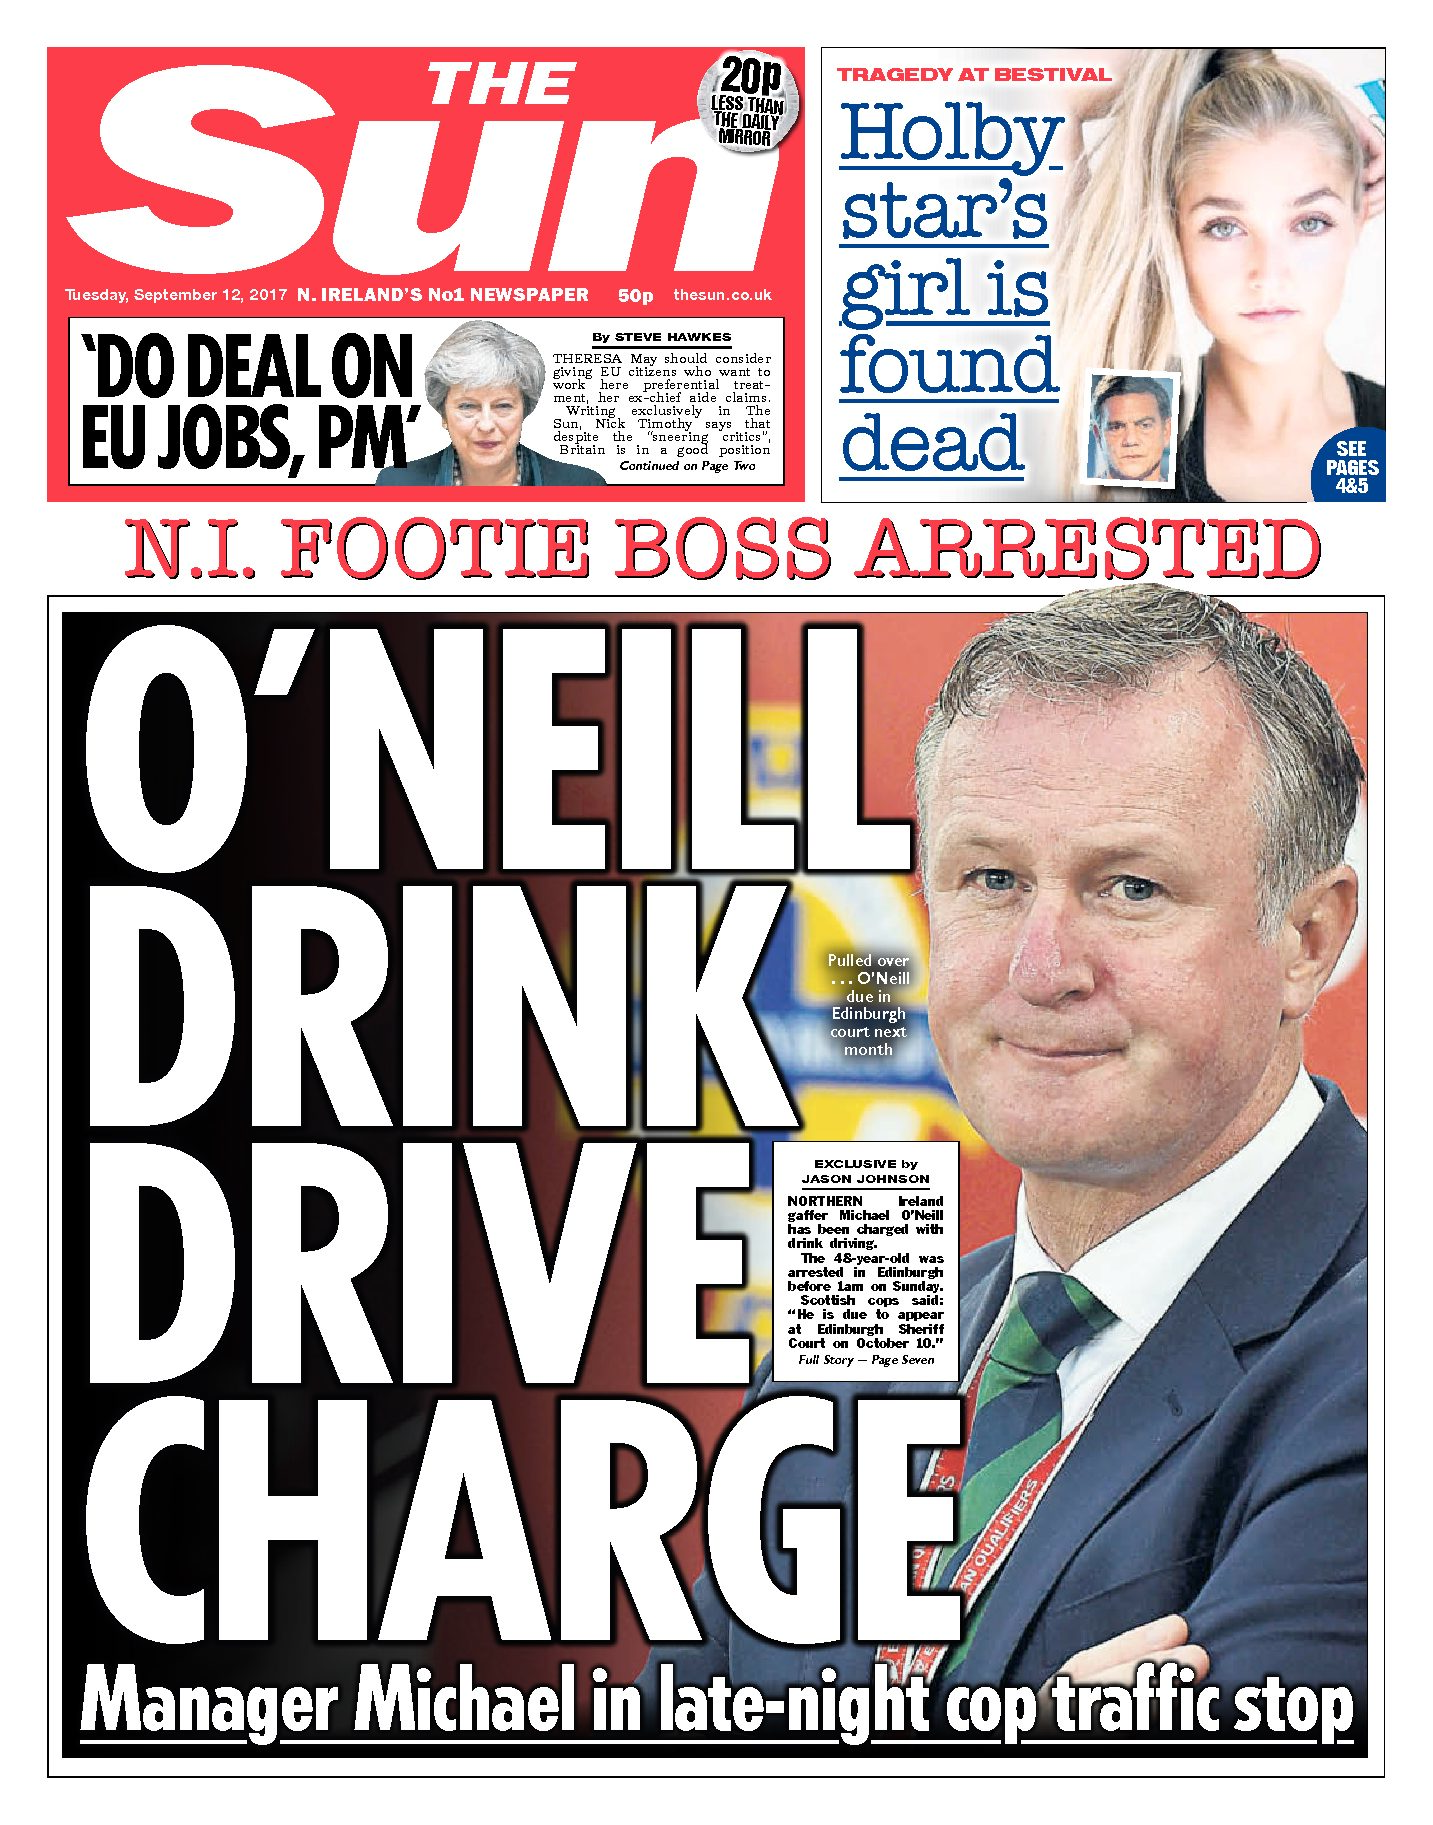 Michael O'neill Drink Driving